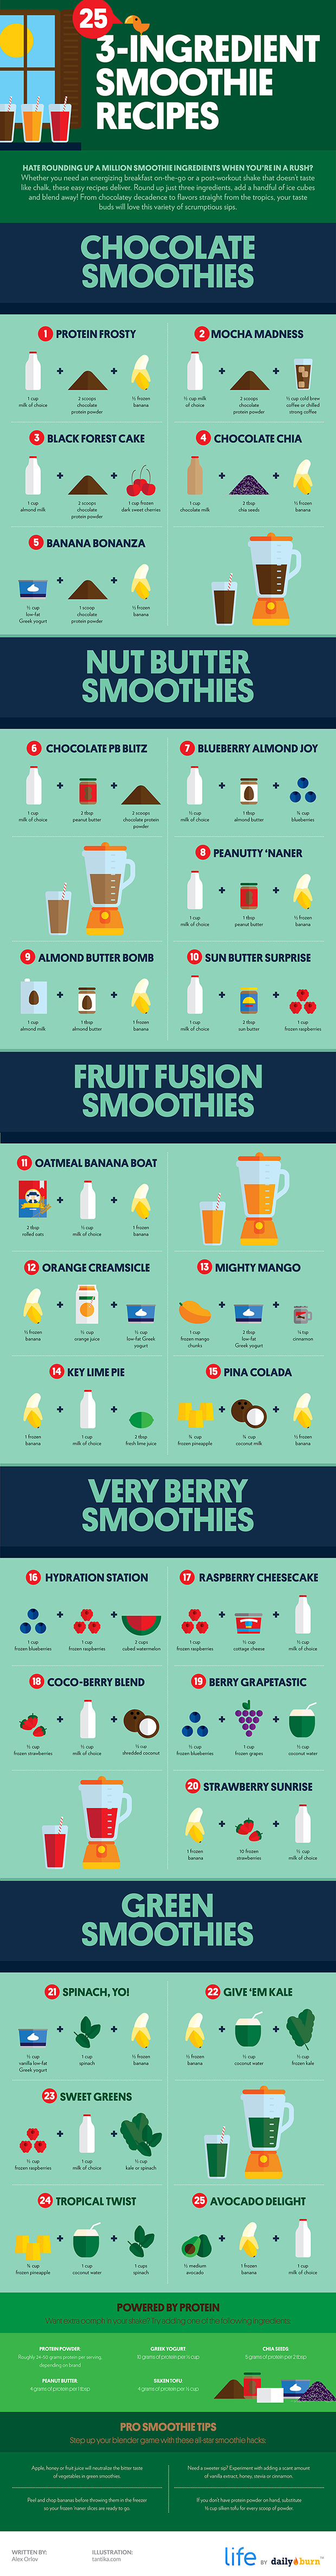 3 ingredient smoothies